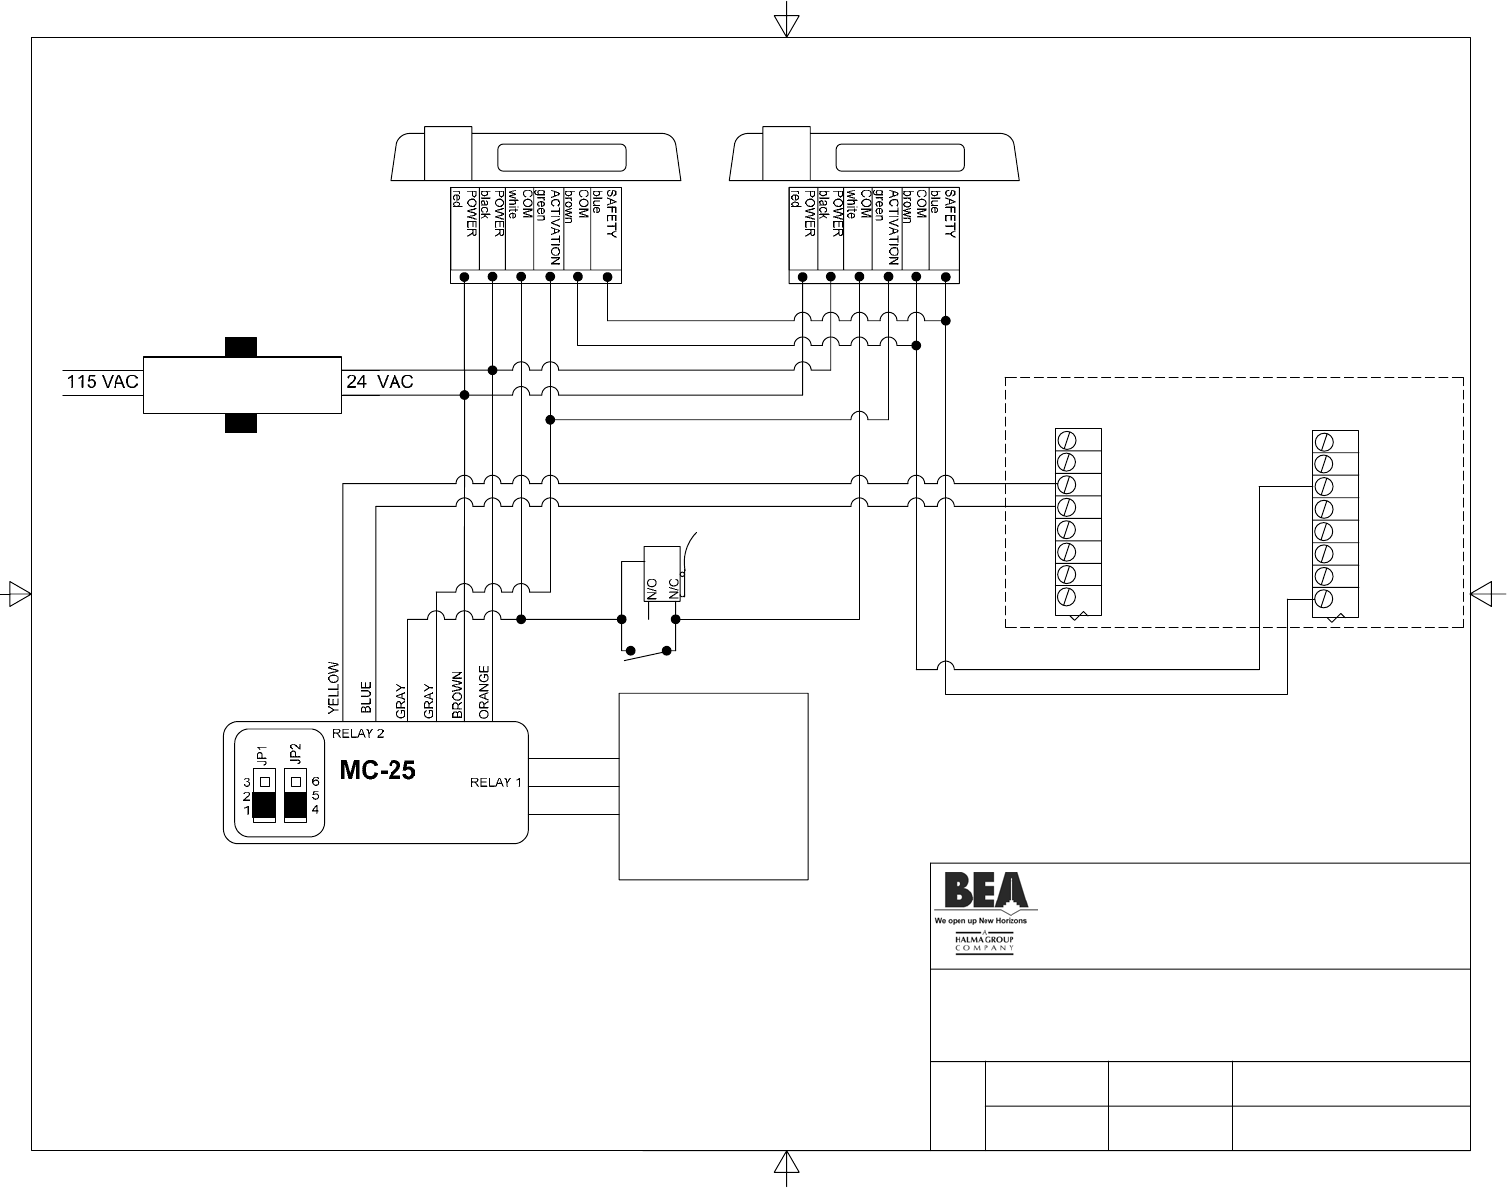 Battery Ignition System moreover Maglock Mounting Brackets Selection as well How To Wire An Access Control Board Dx Series Part 1 together with Onity Wiring Diagram in addition Ada Light Switch Height. on magnetic lock wiring diagram